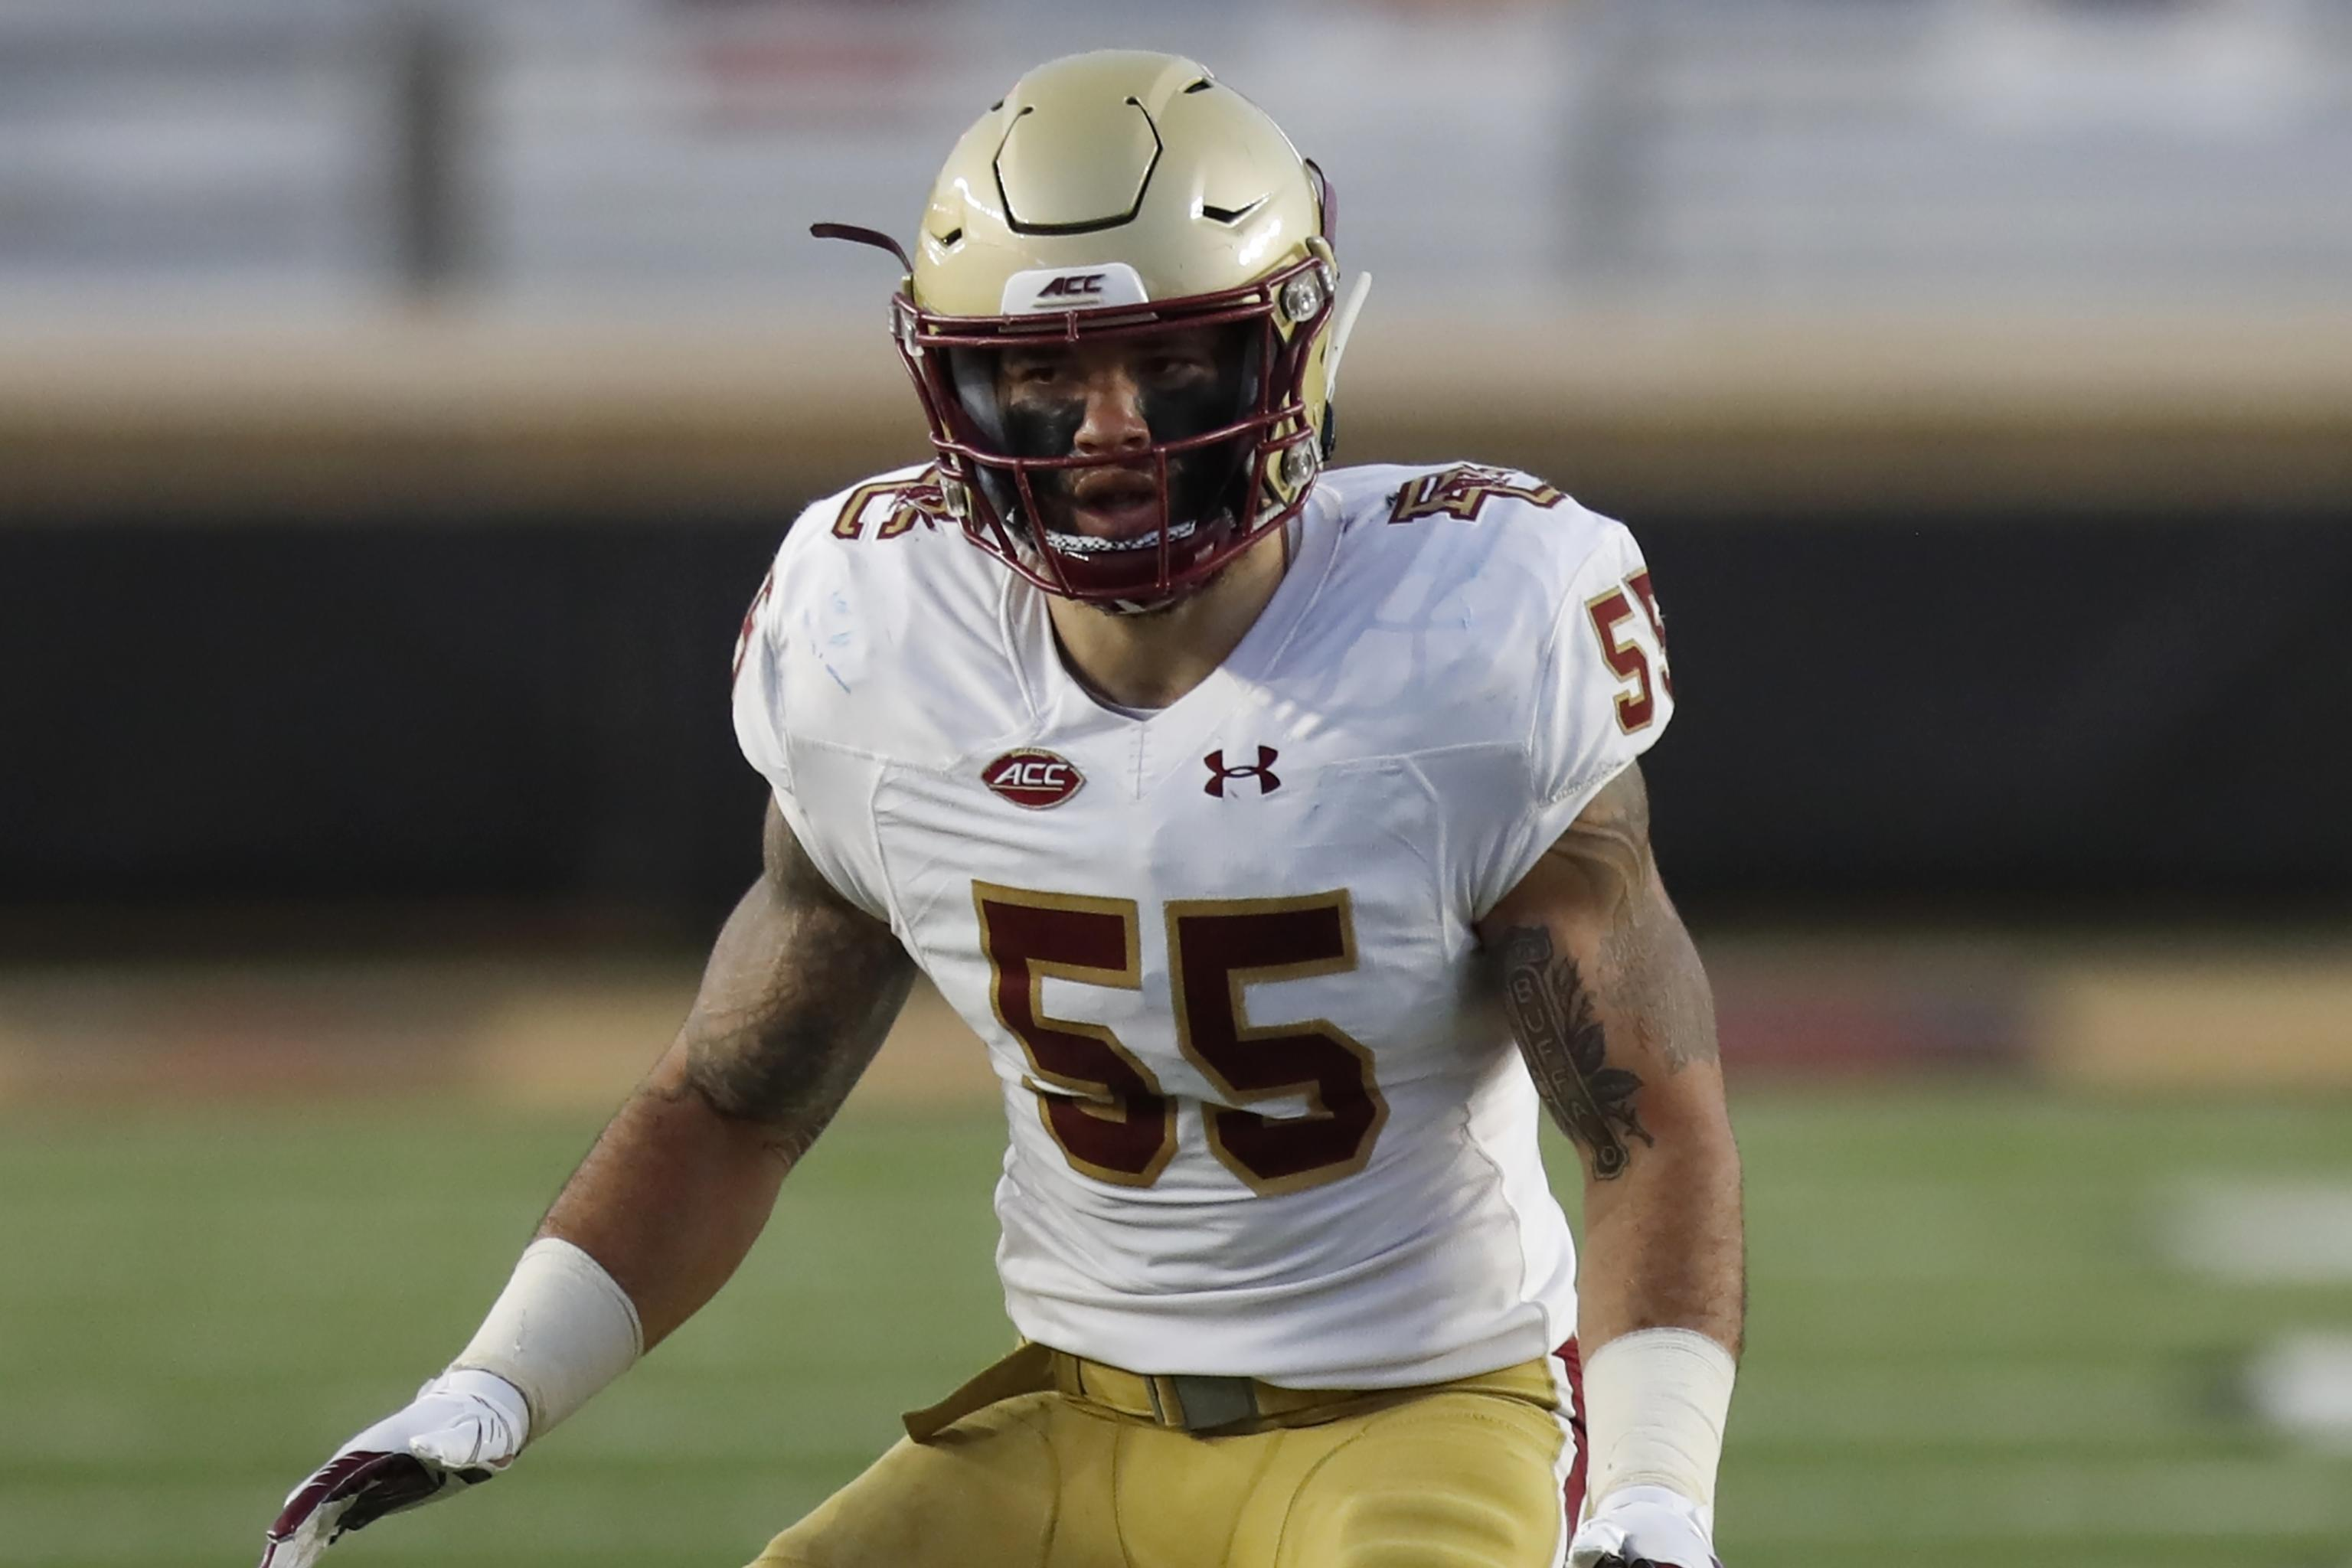 Isaiah McDuffie NFL Draft 2021: Scouting Report for Green Bay Packers LB   Bleacher Report   Latest News, Videos and Highlights